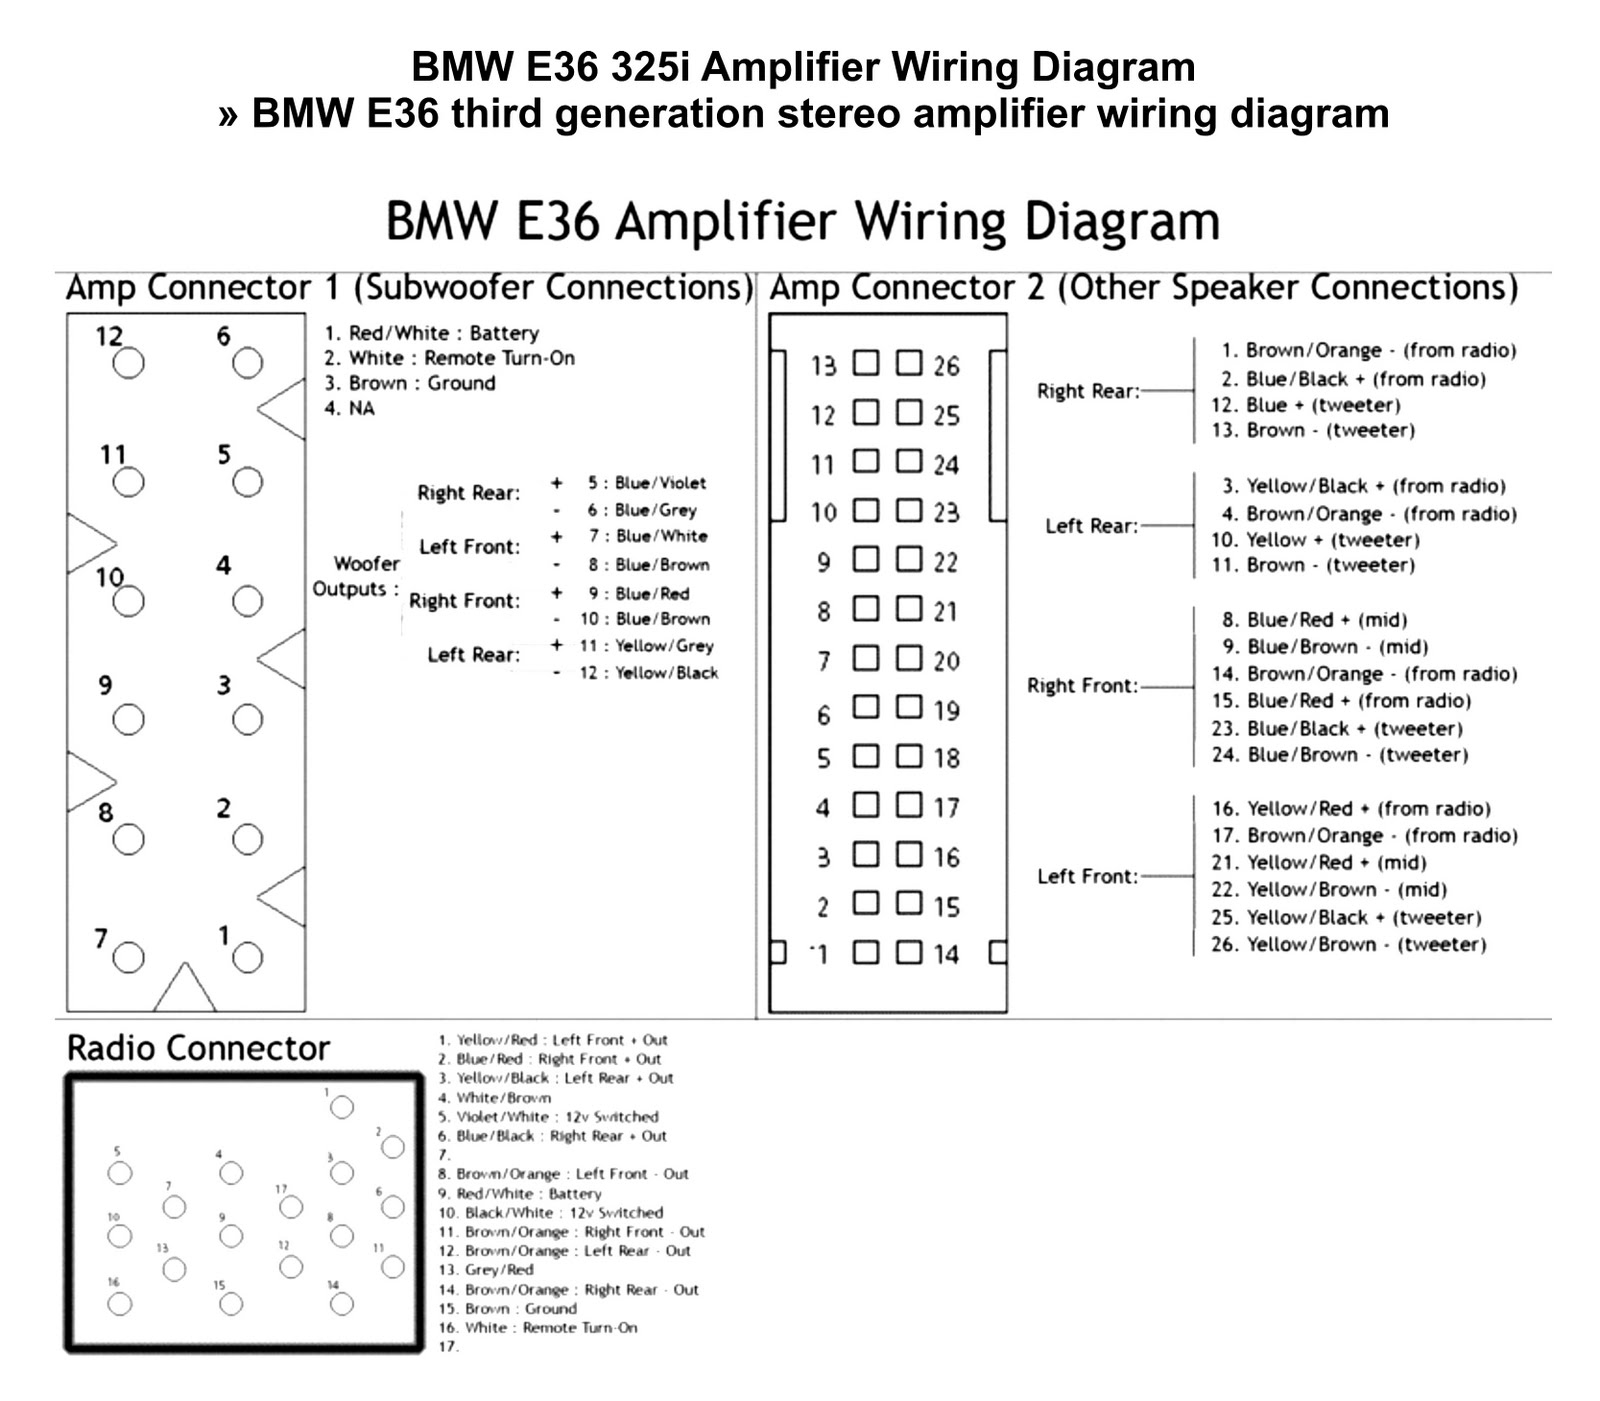 Bmw E39 Amplifier Wire Diagram Data Wiring Ignition Coil Harness E36 Radio Diagrams Schematic Subwoofer And Amp Installation